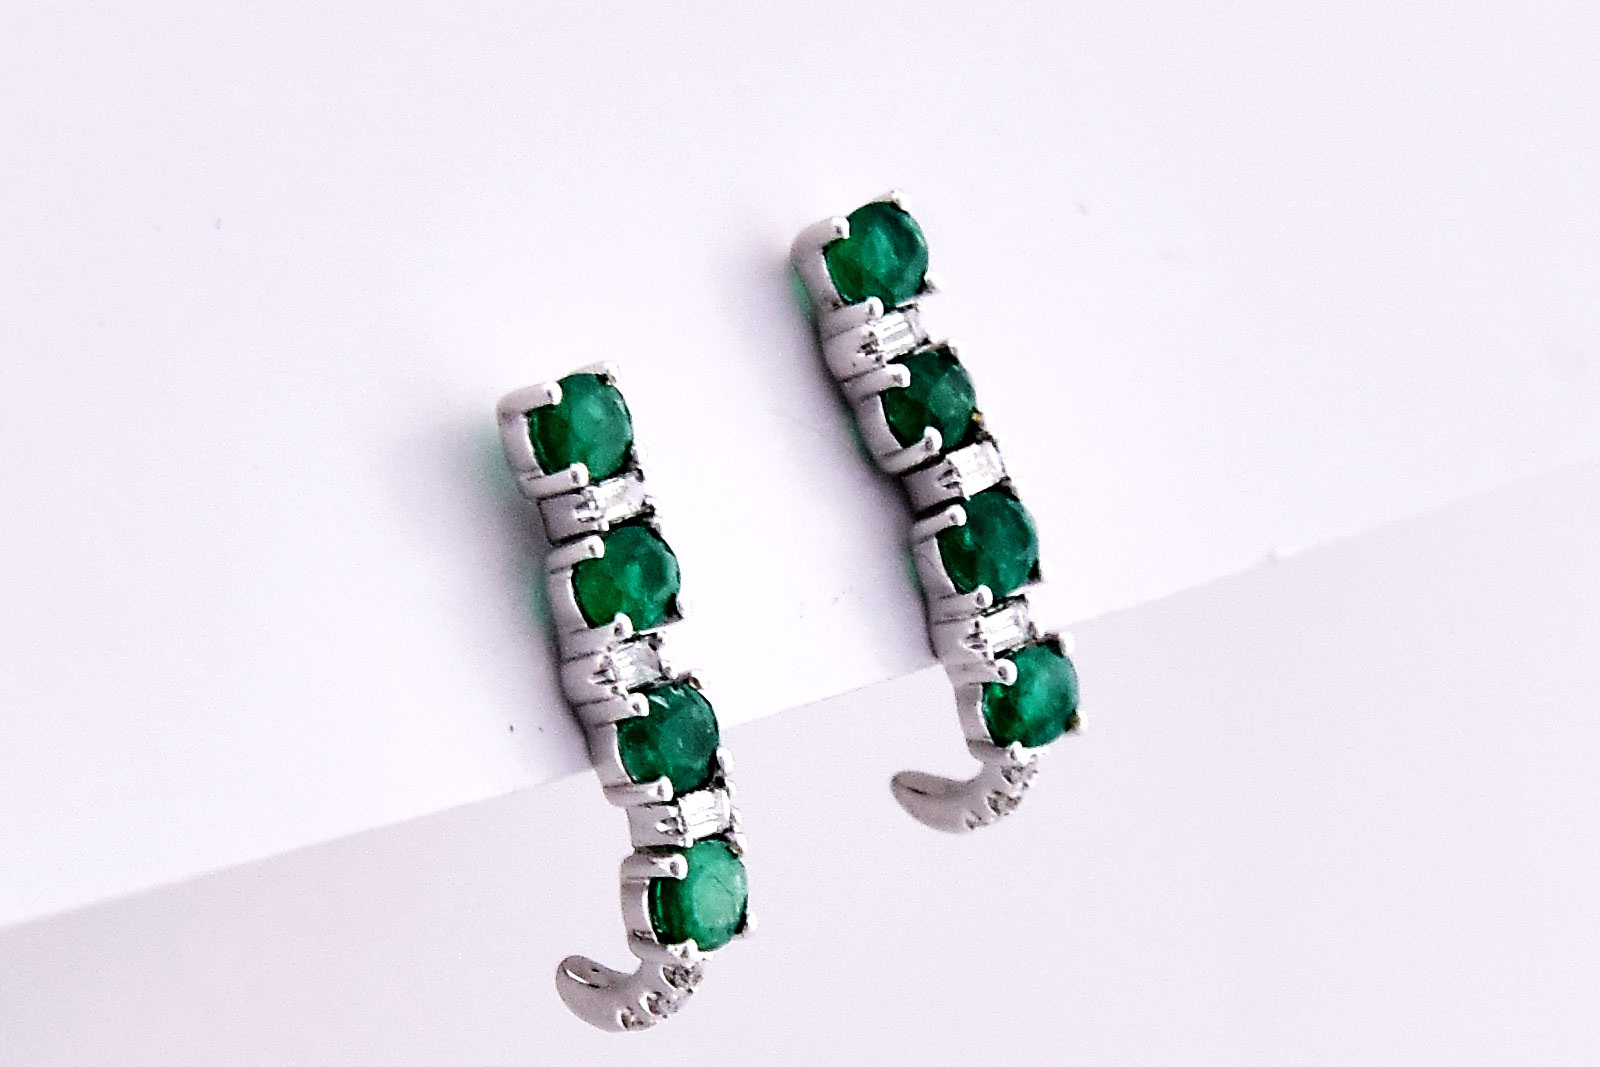 1 Carat Total Weight Emerald Diamond Earrings